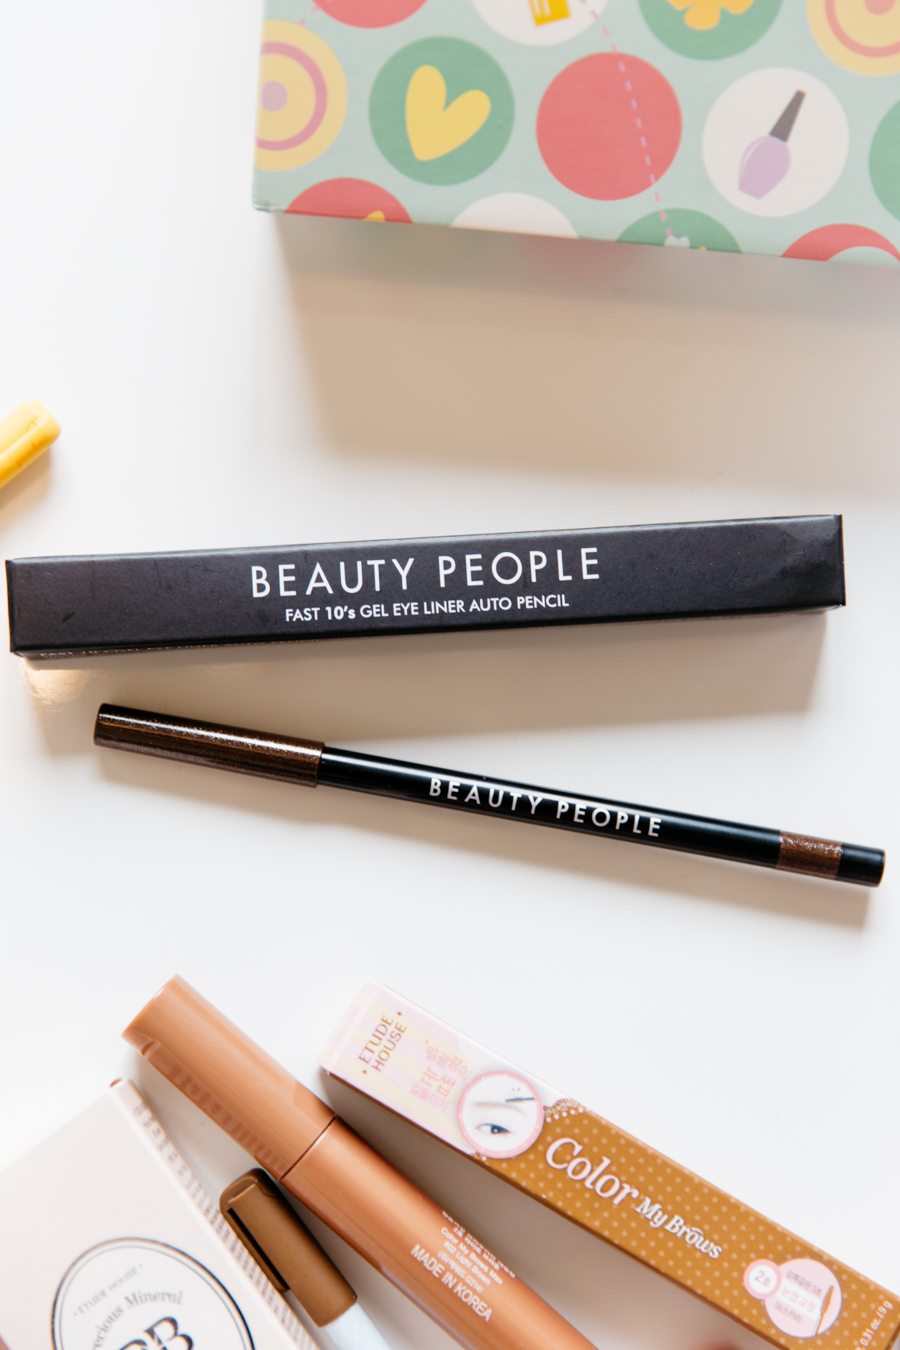 Beauty People eyeliner in diamond brown.